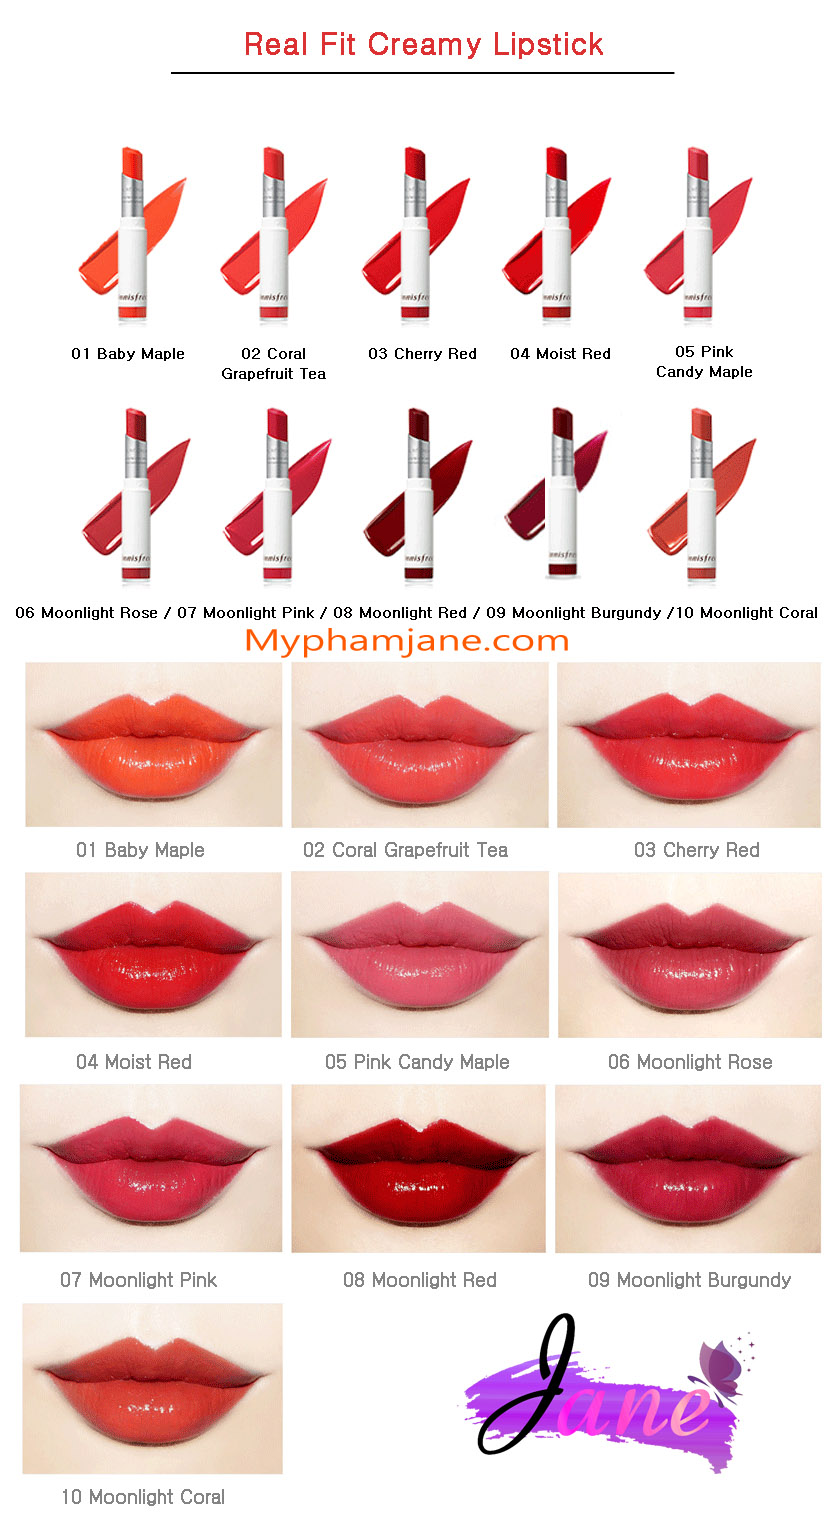 bảng màu son Innisfree Real Fit Creamy Lipstick